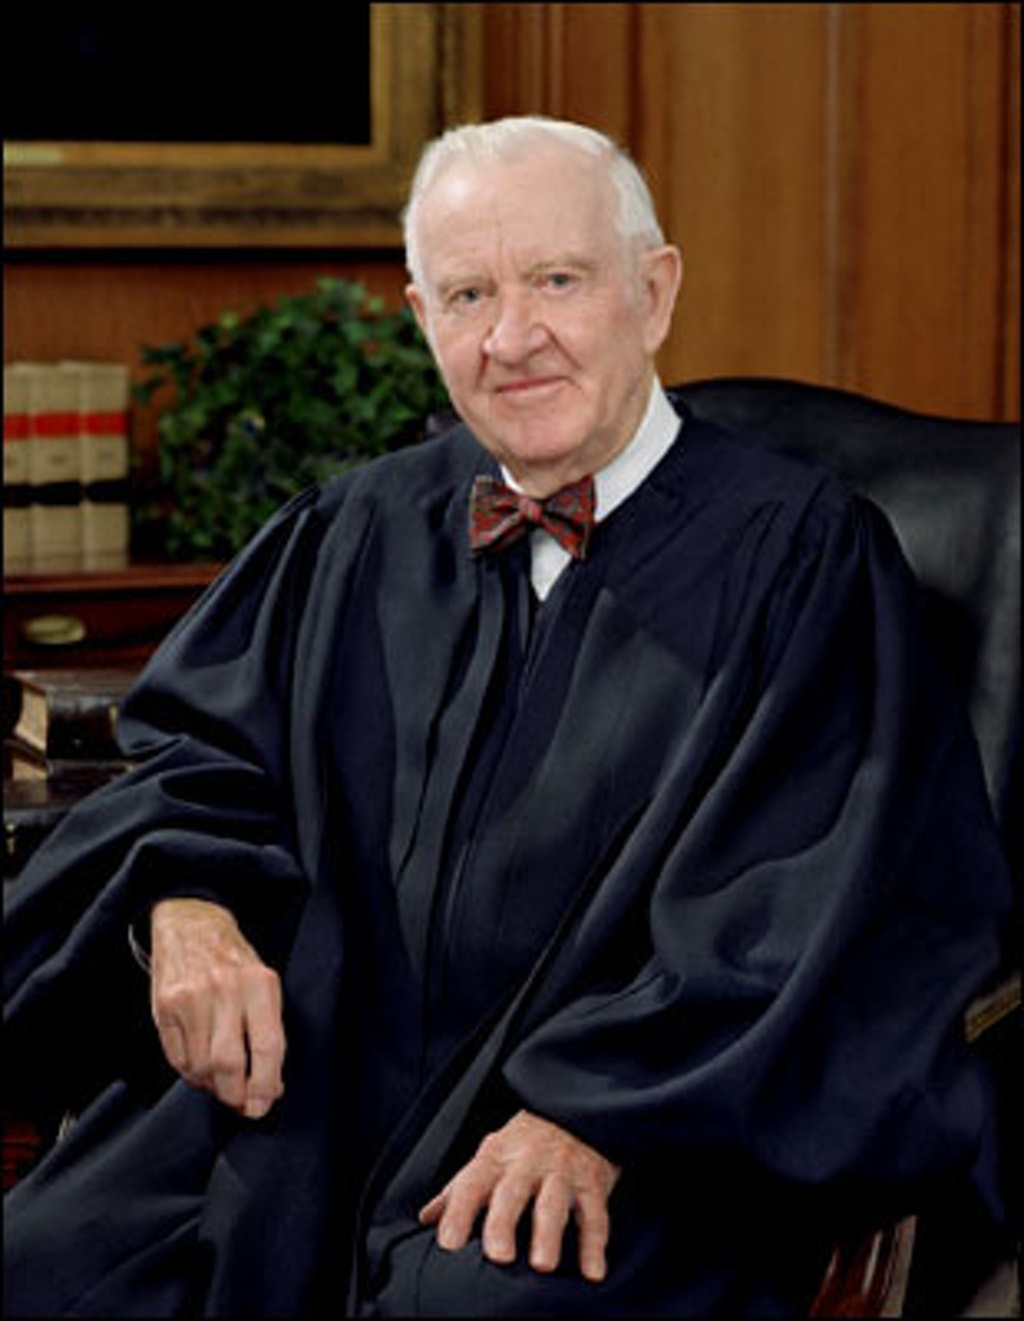 Justice Stevens Says Texas Executed an Innocent Man